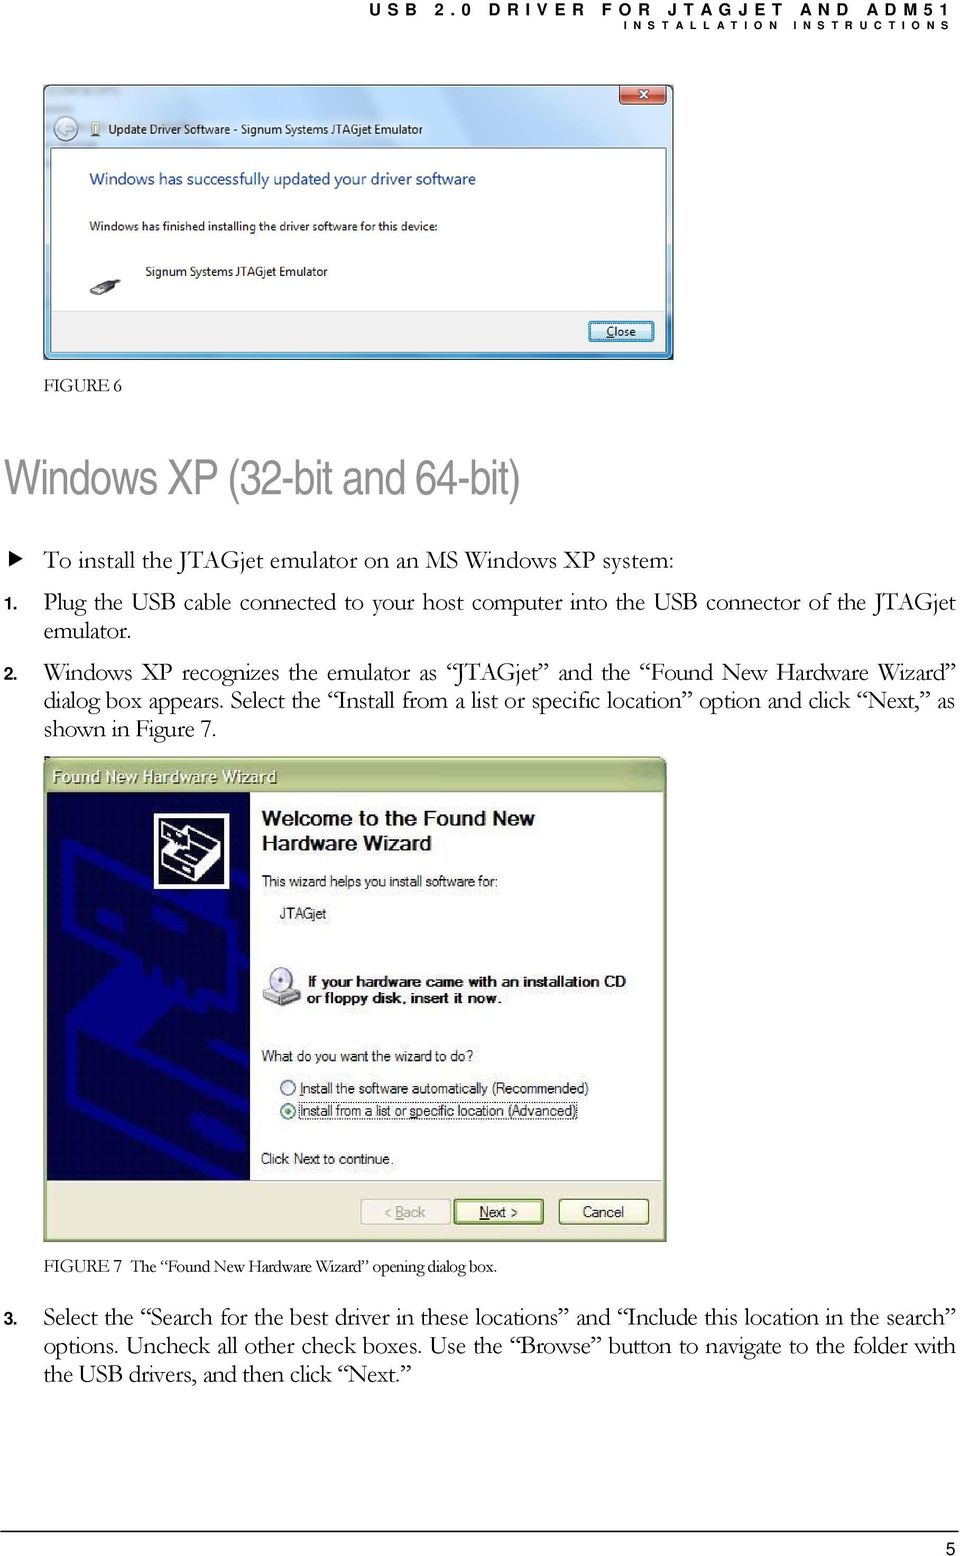 Windows XP recognizes the emulator as JTAGjet and the Found New Hardware Wizard dialog box appears.